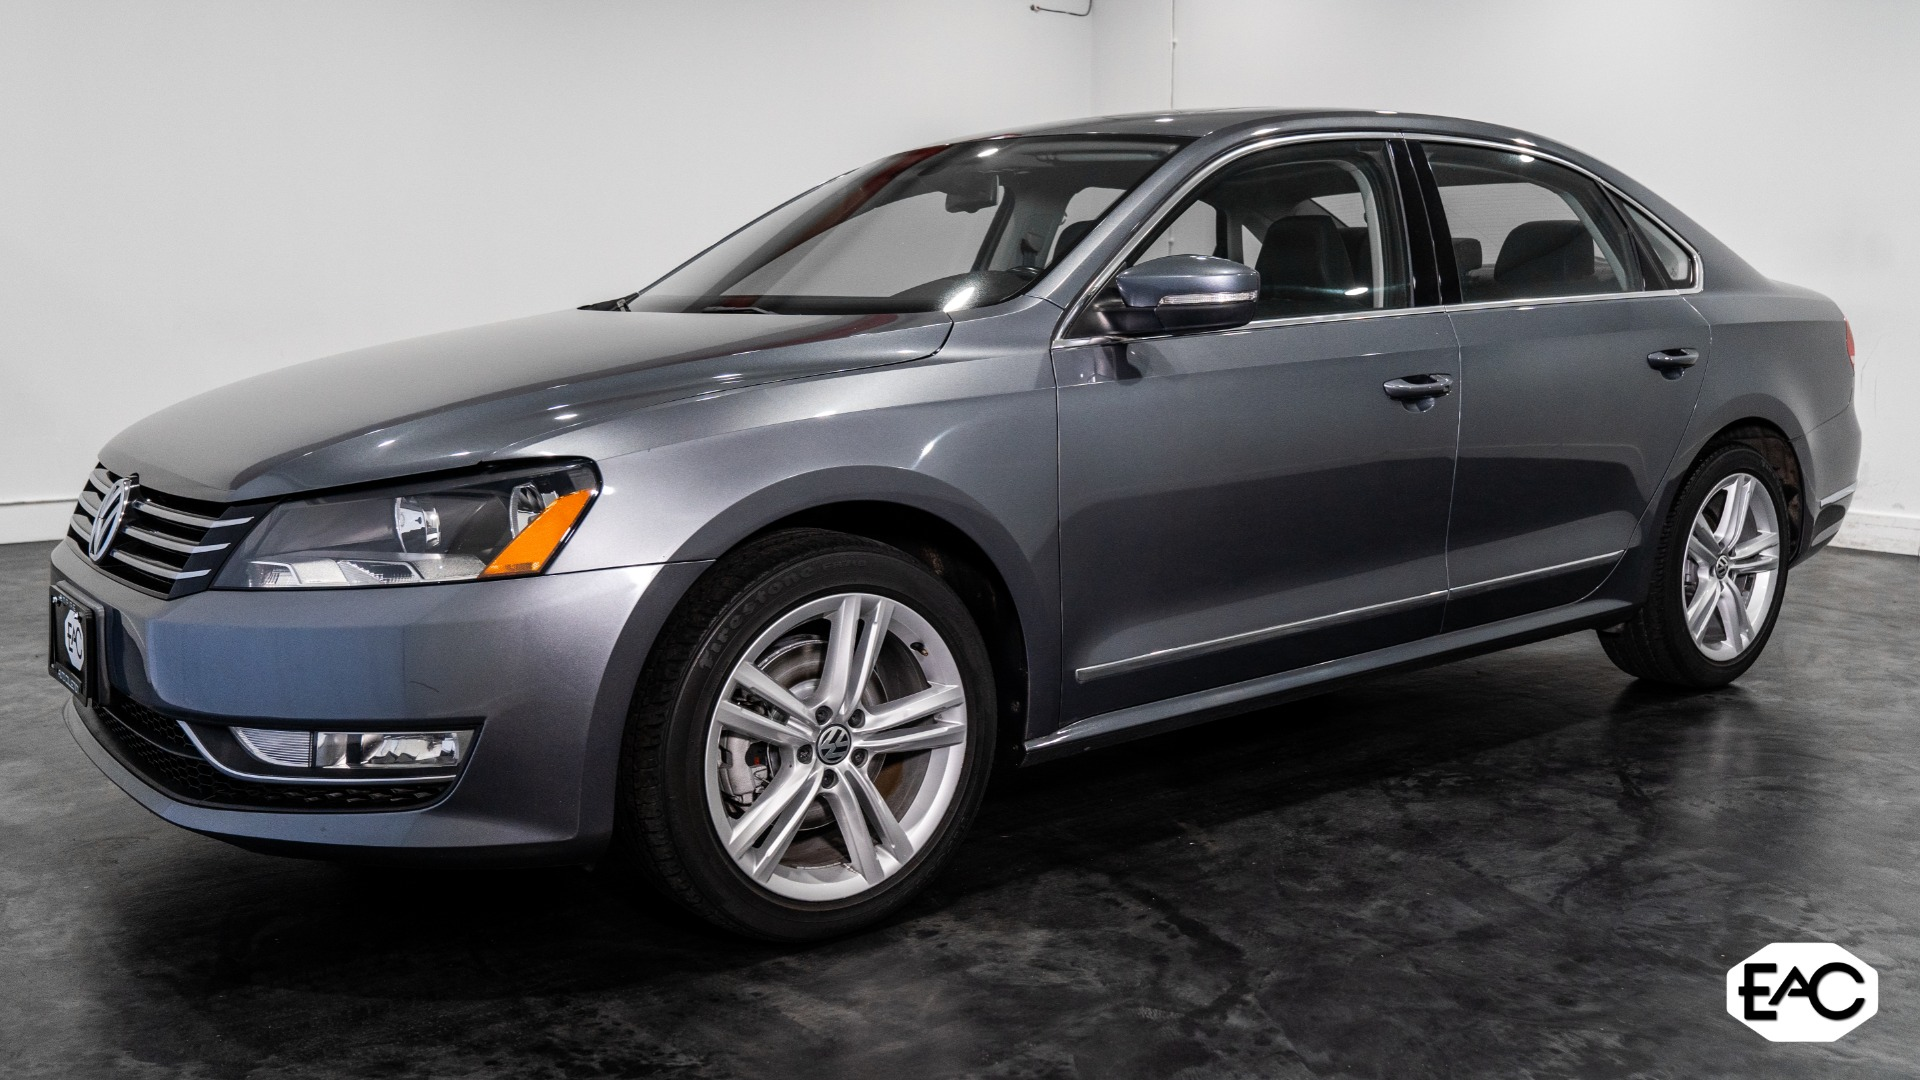 Used 2014 Volkswagen Passat 2.0L TDI SE for sale Sold at Empire Auto Collection in Warren MI 48091 1